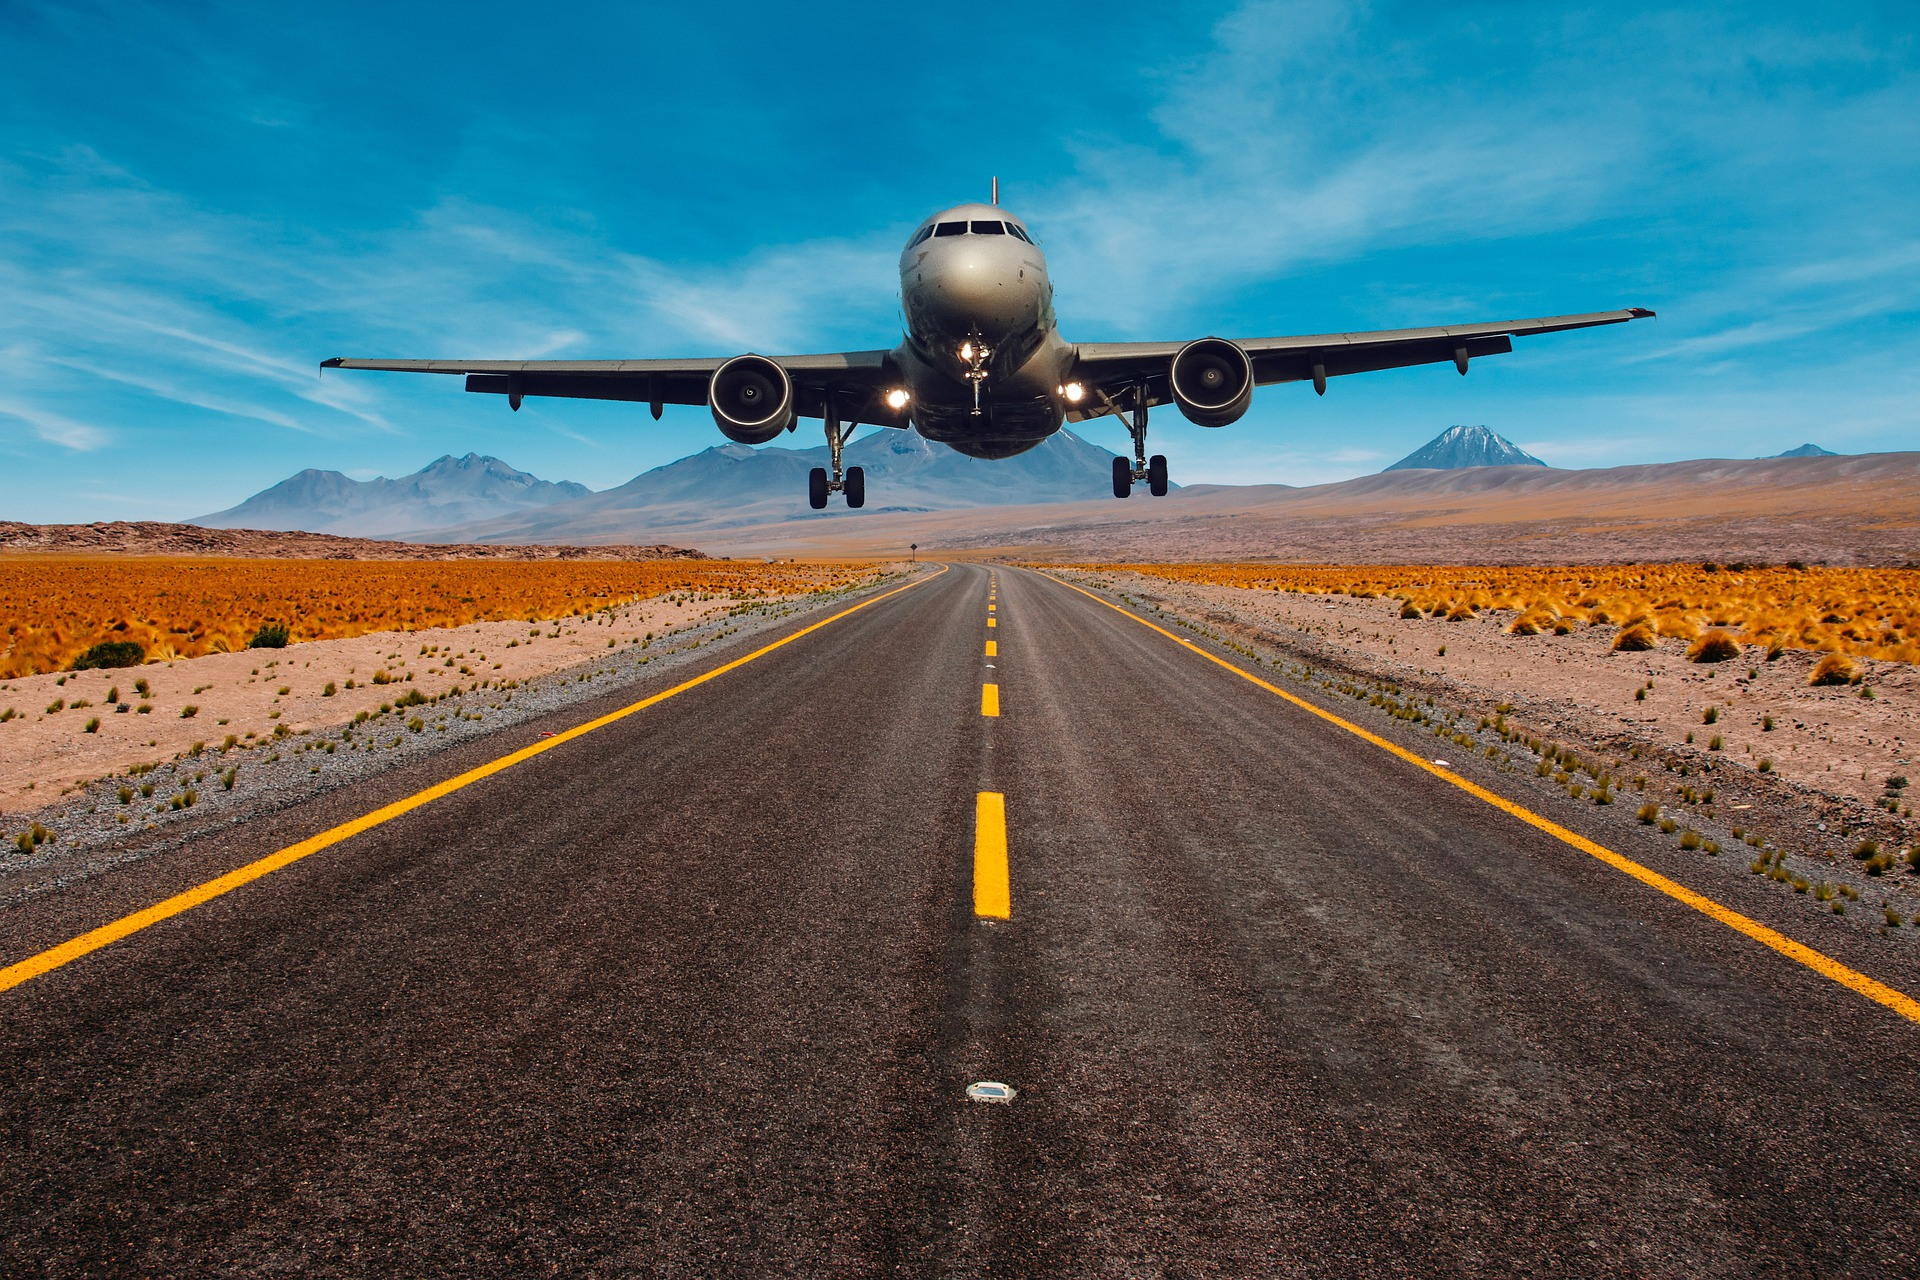 6 Qualities To Make Your Aviation Website Development More Vibrant